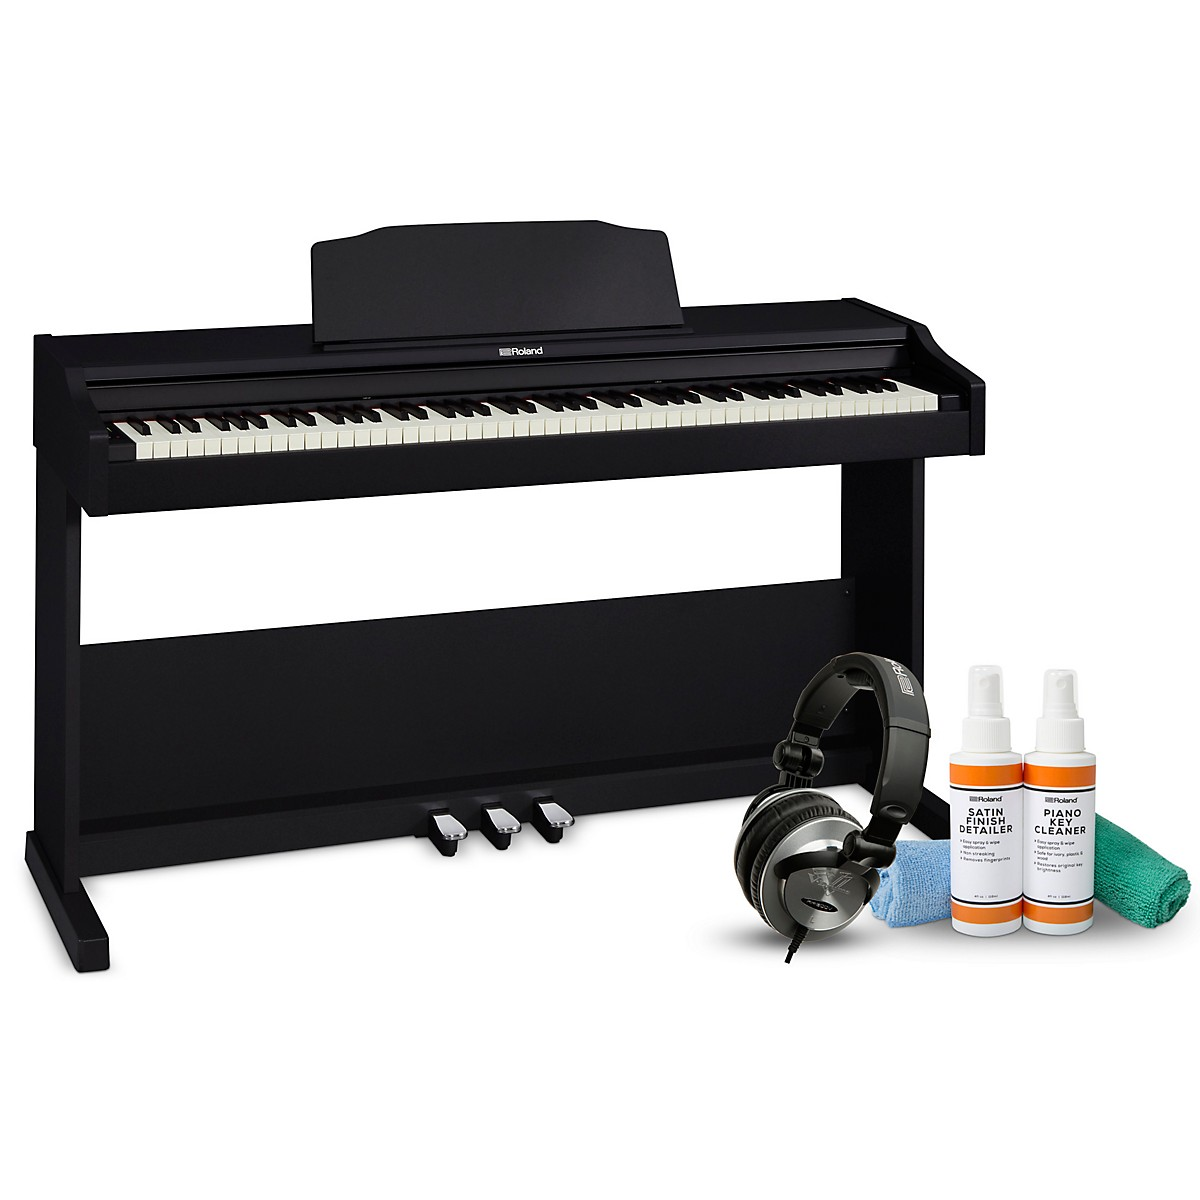 Roland RP-102 Digital Piano with RH-300V Headphones and Cleaning Kit